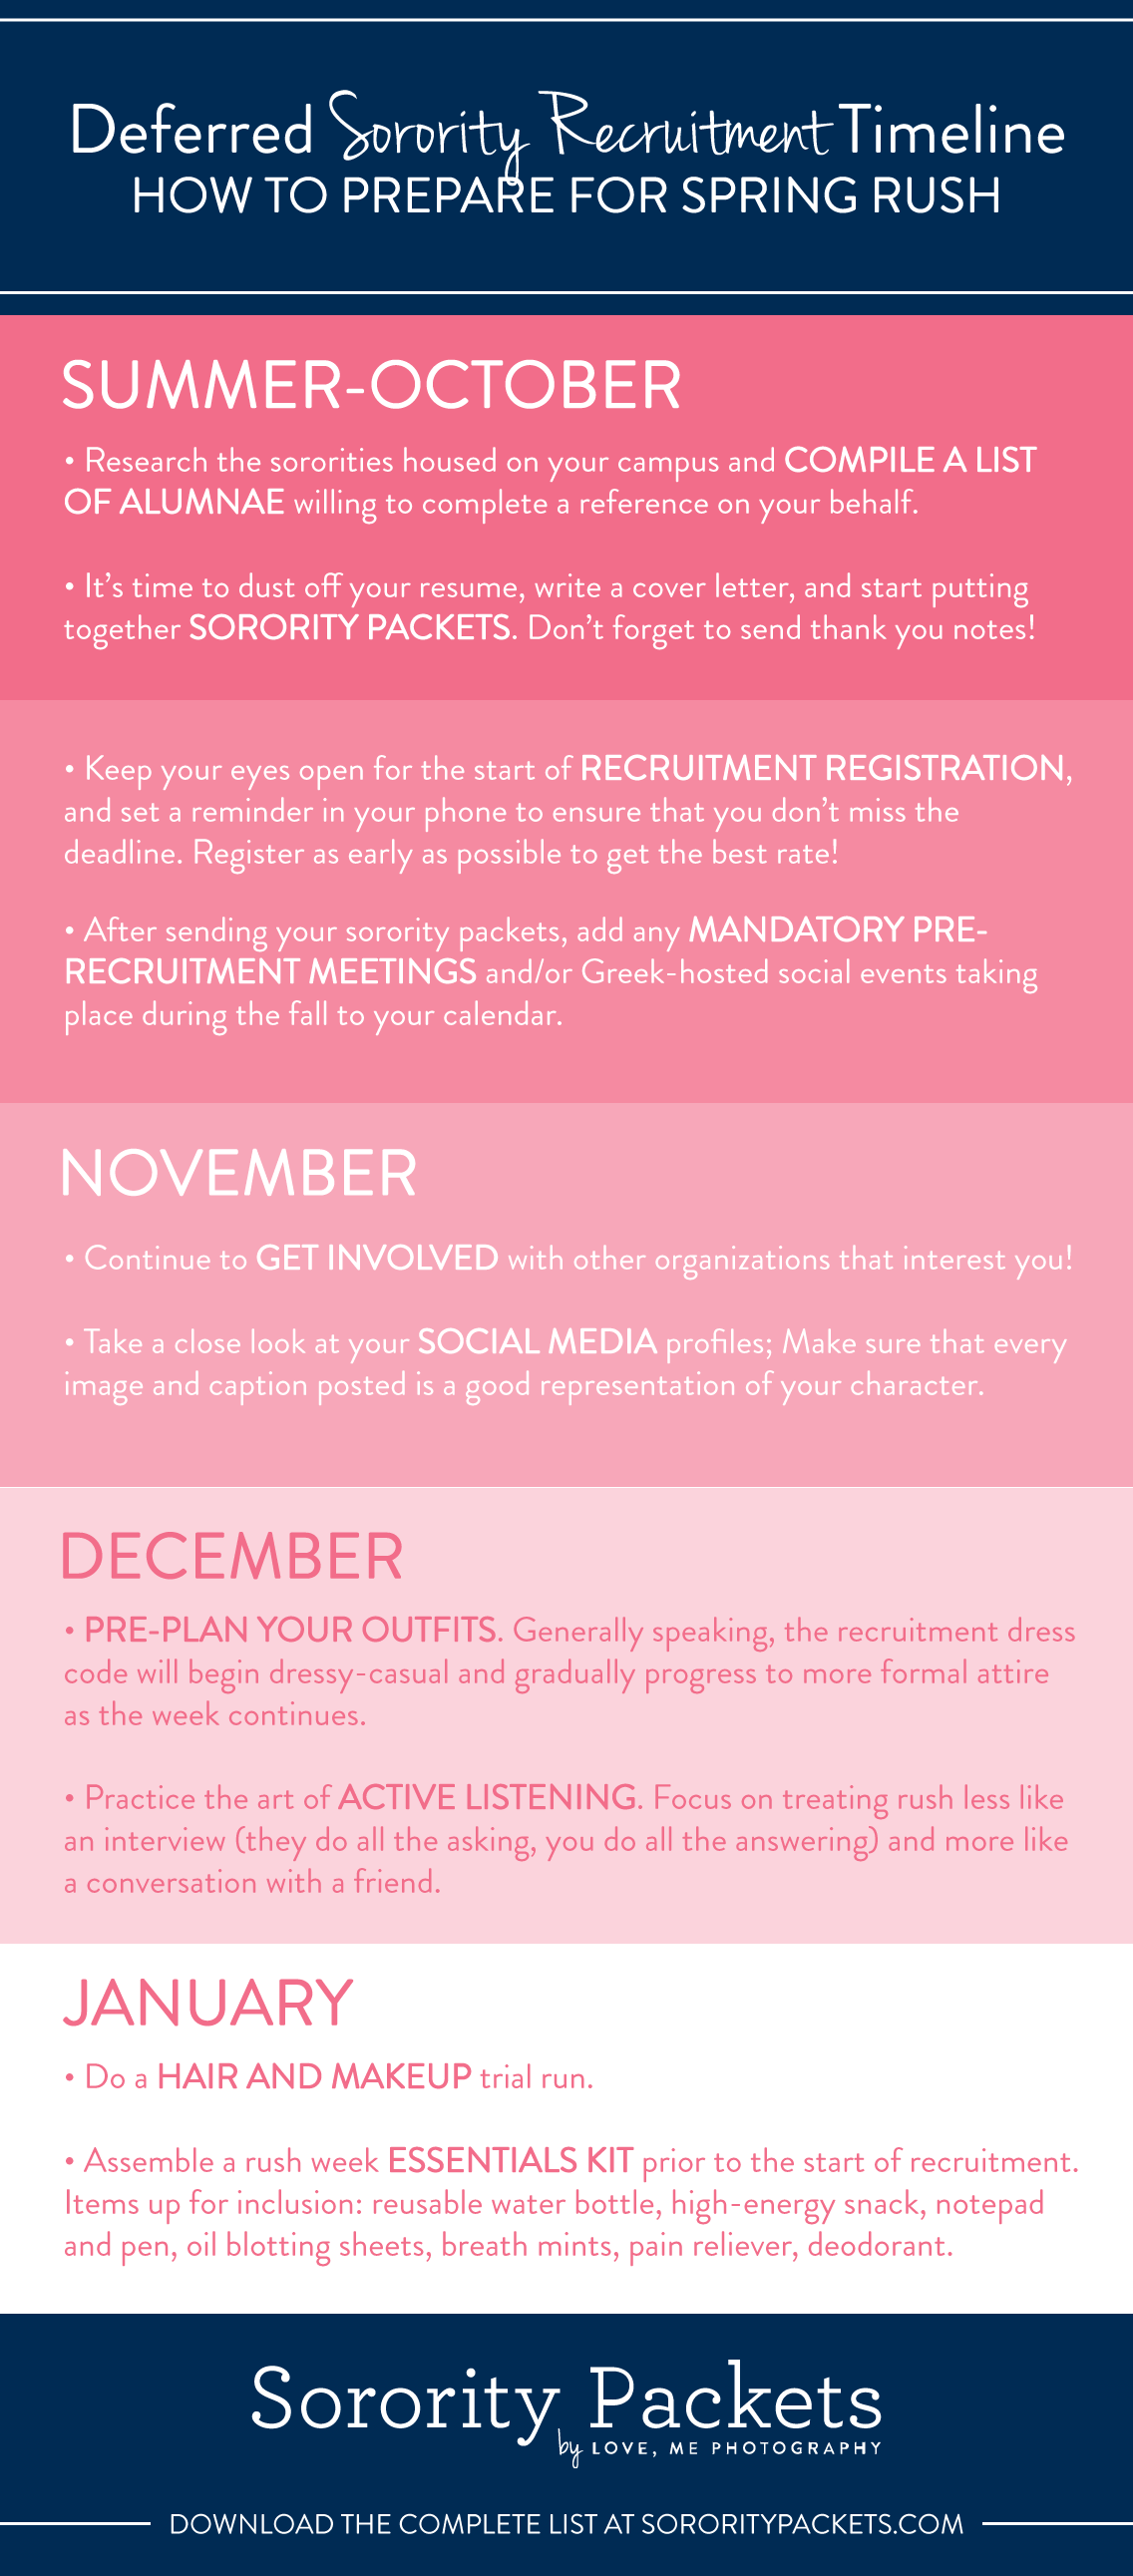 Deferred Recruitment 101 How To Prepare For Spring Rush Sororitypackets Com